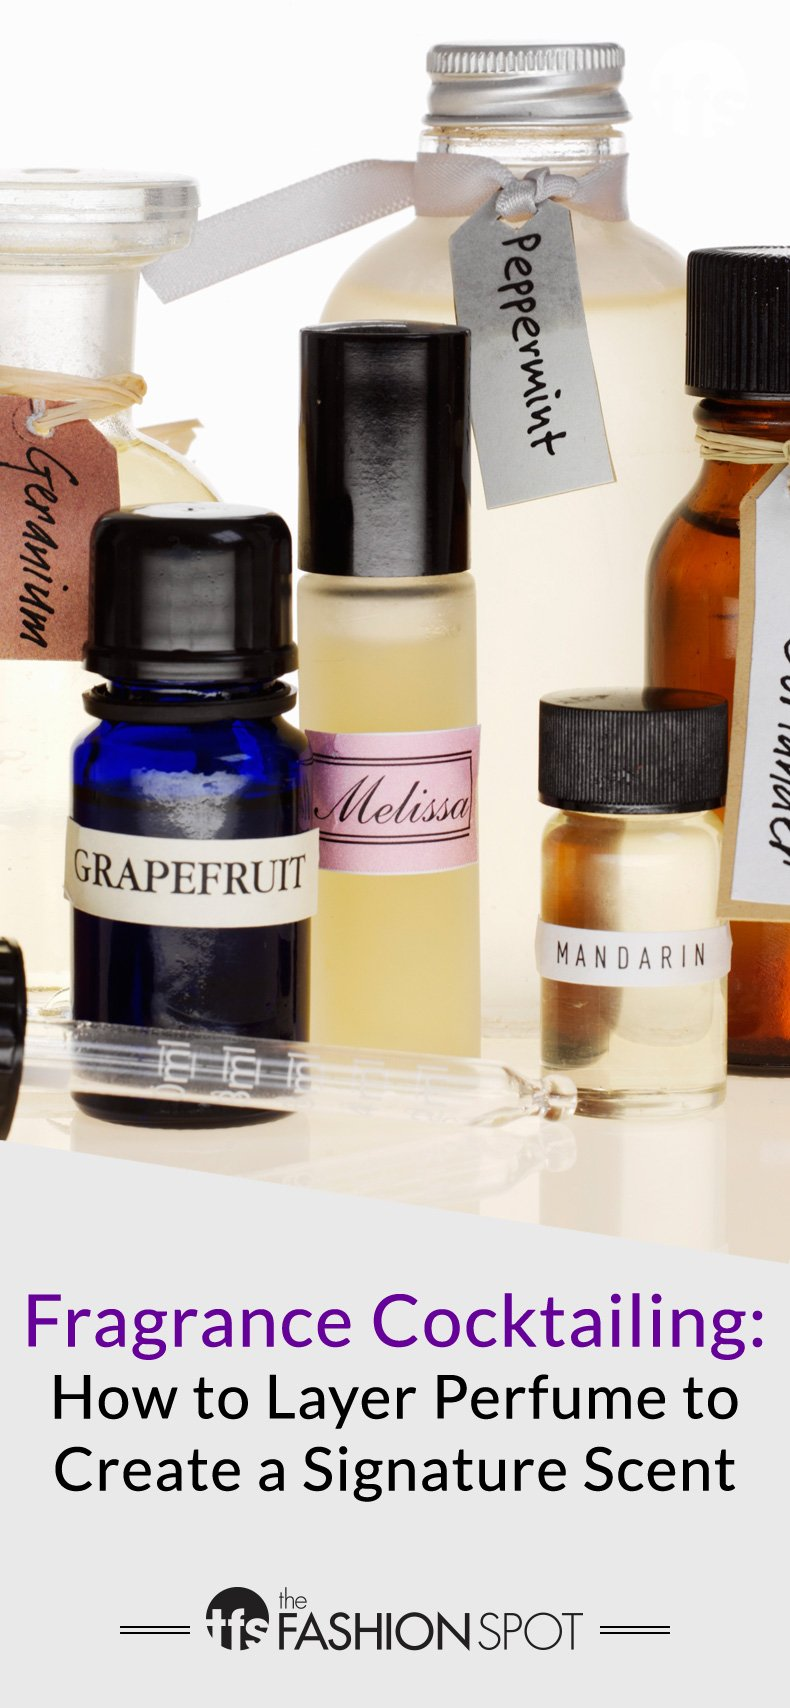 Fragrance Cocktailing: How to Layer Perfume to Create a Signature Scent